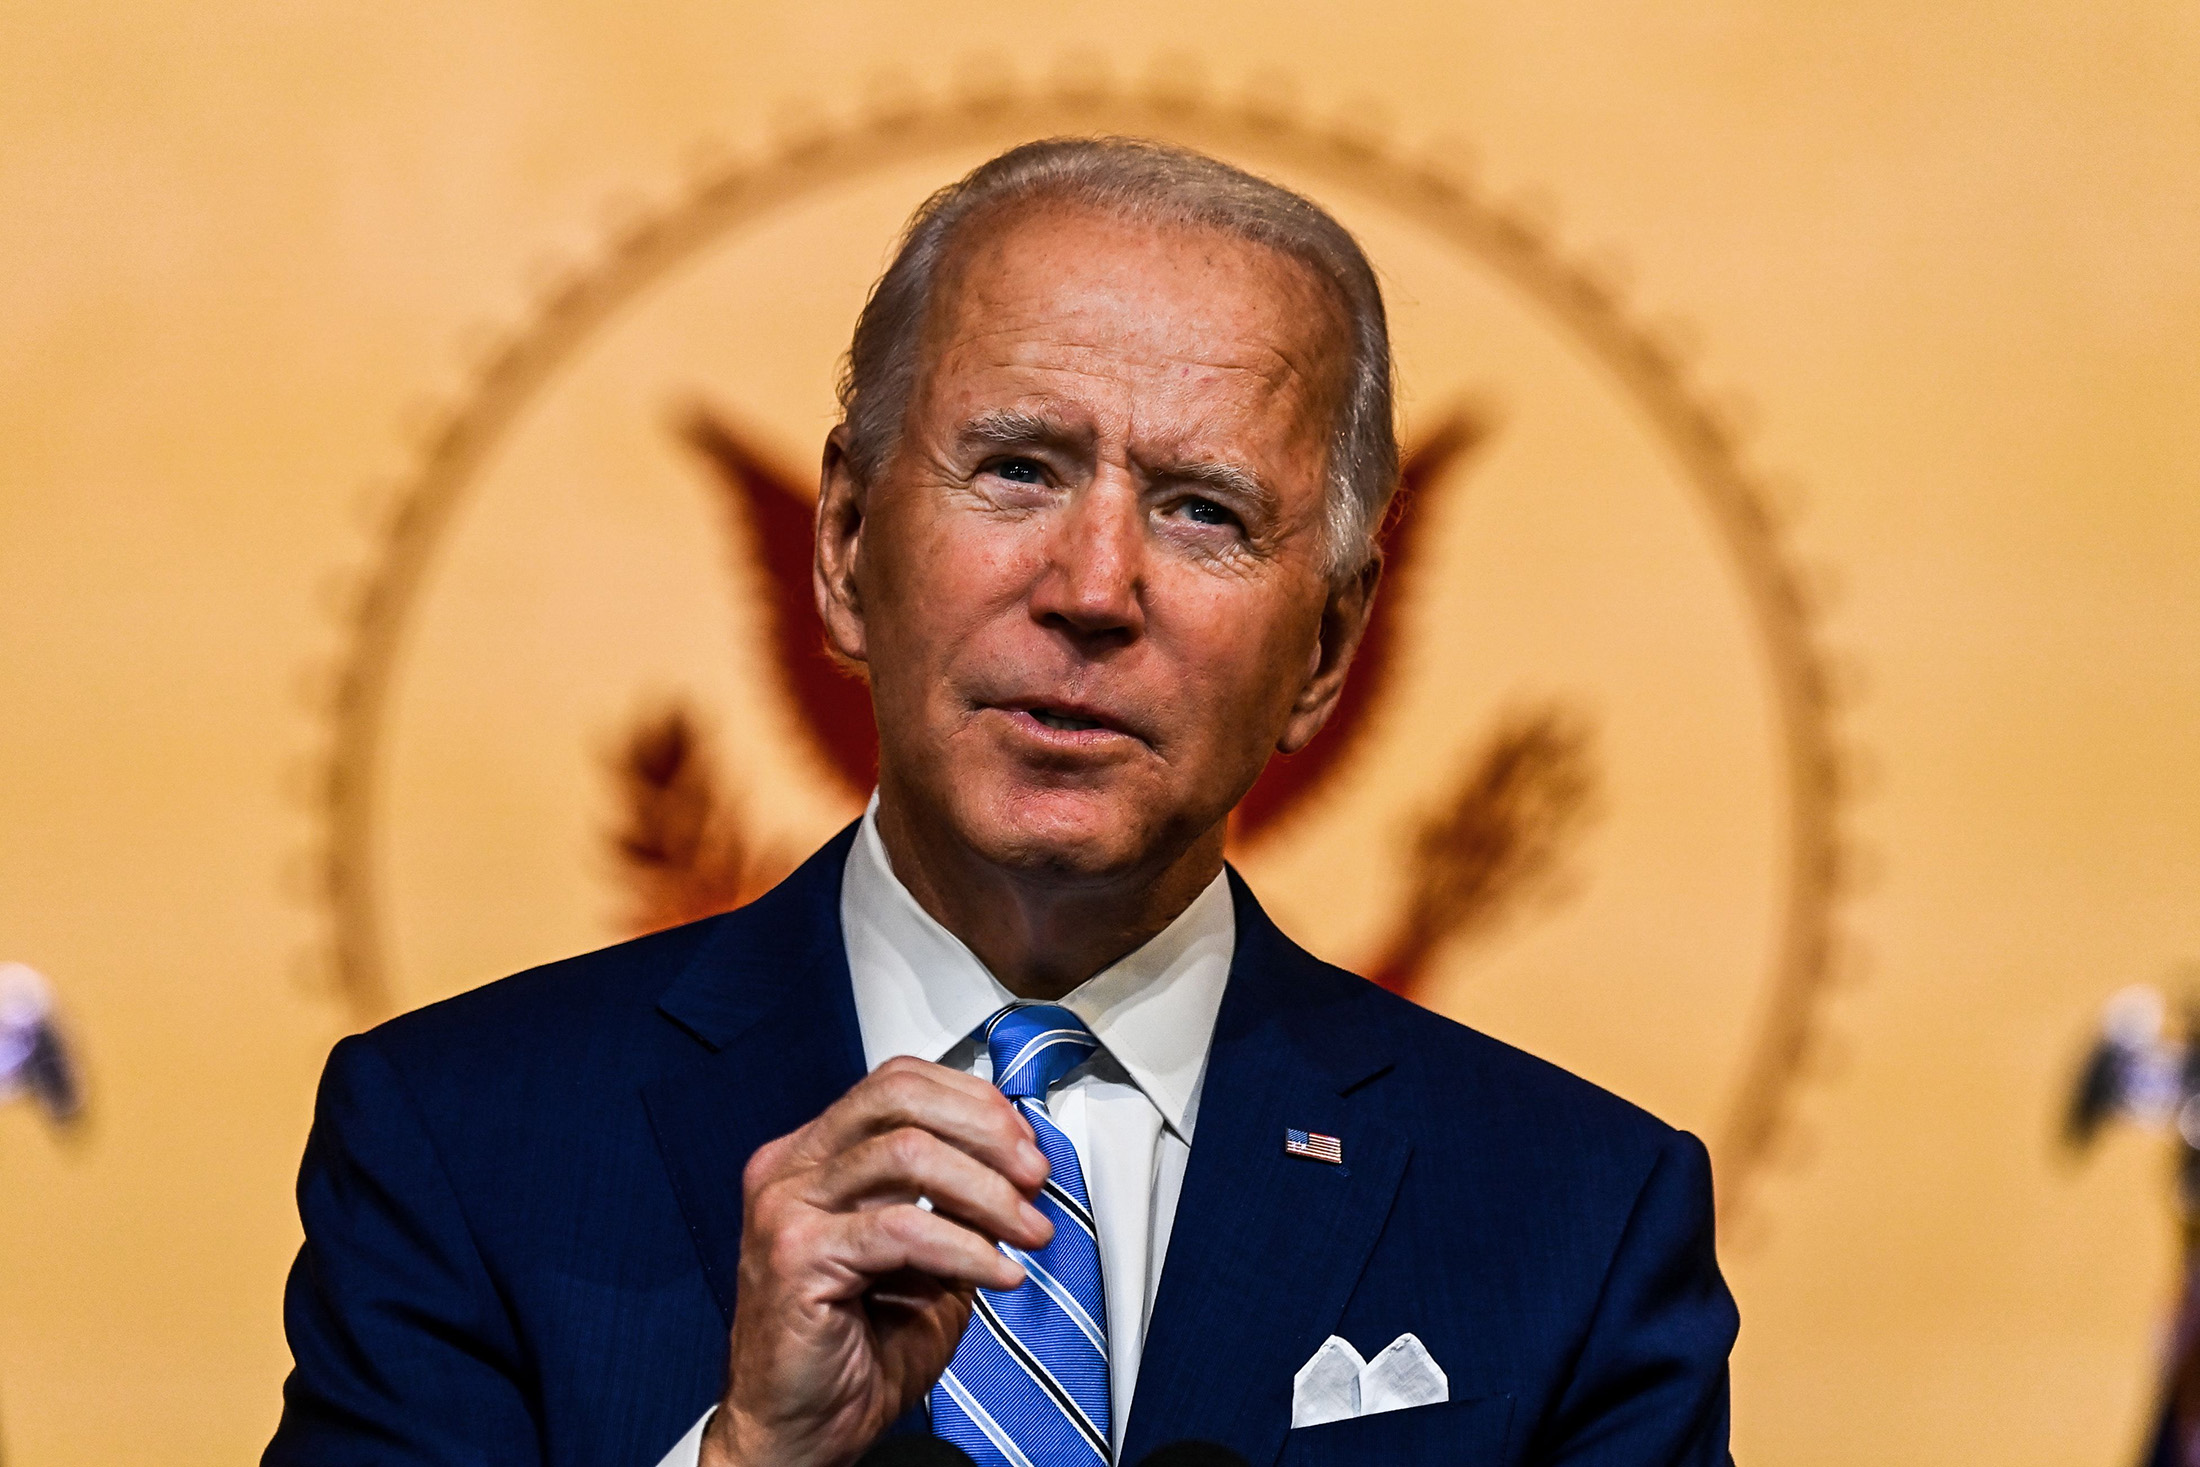 U.S. President-elect Joe Biden delivers a Thanksgiving address at the Queen Theatre in Wilmington, Delaware, on November 25.